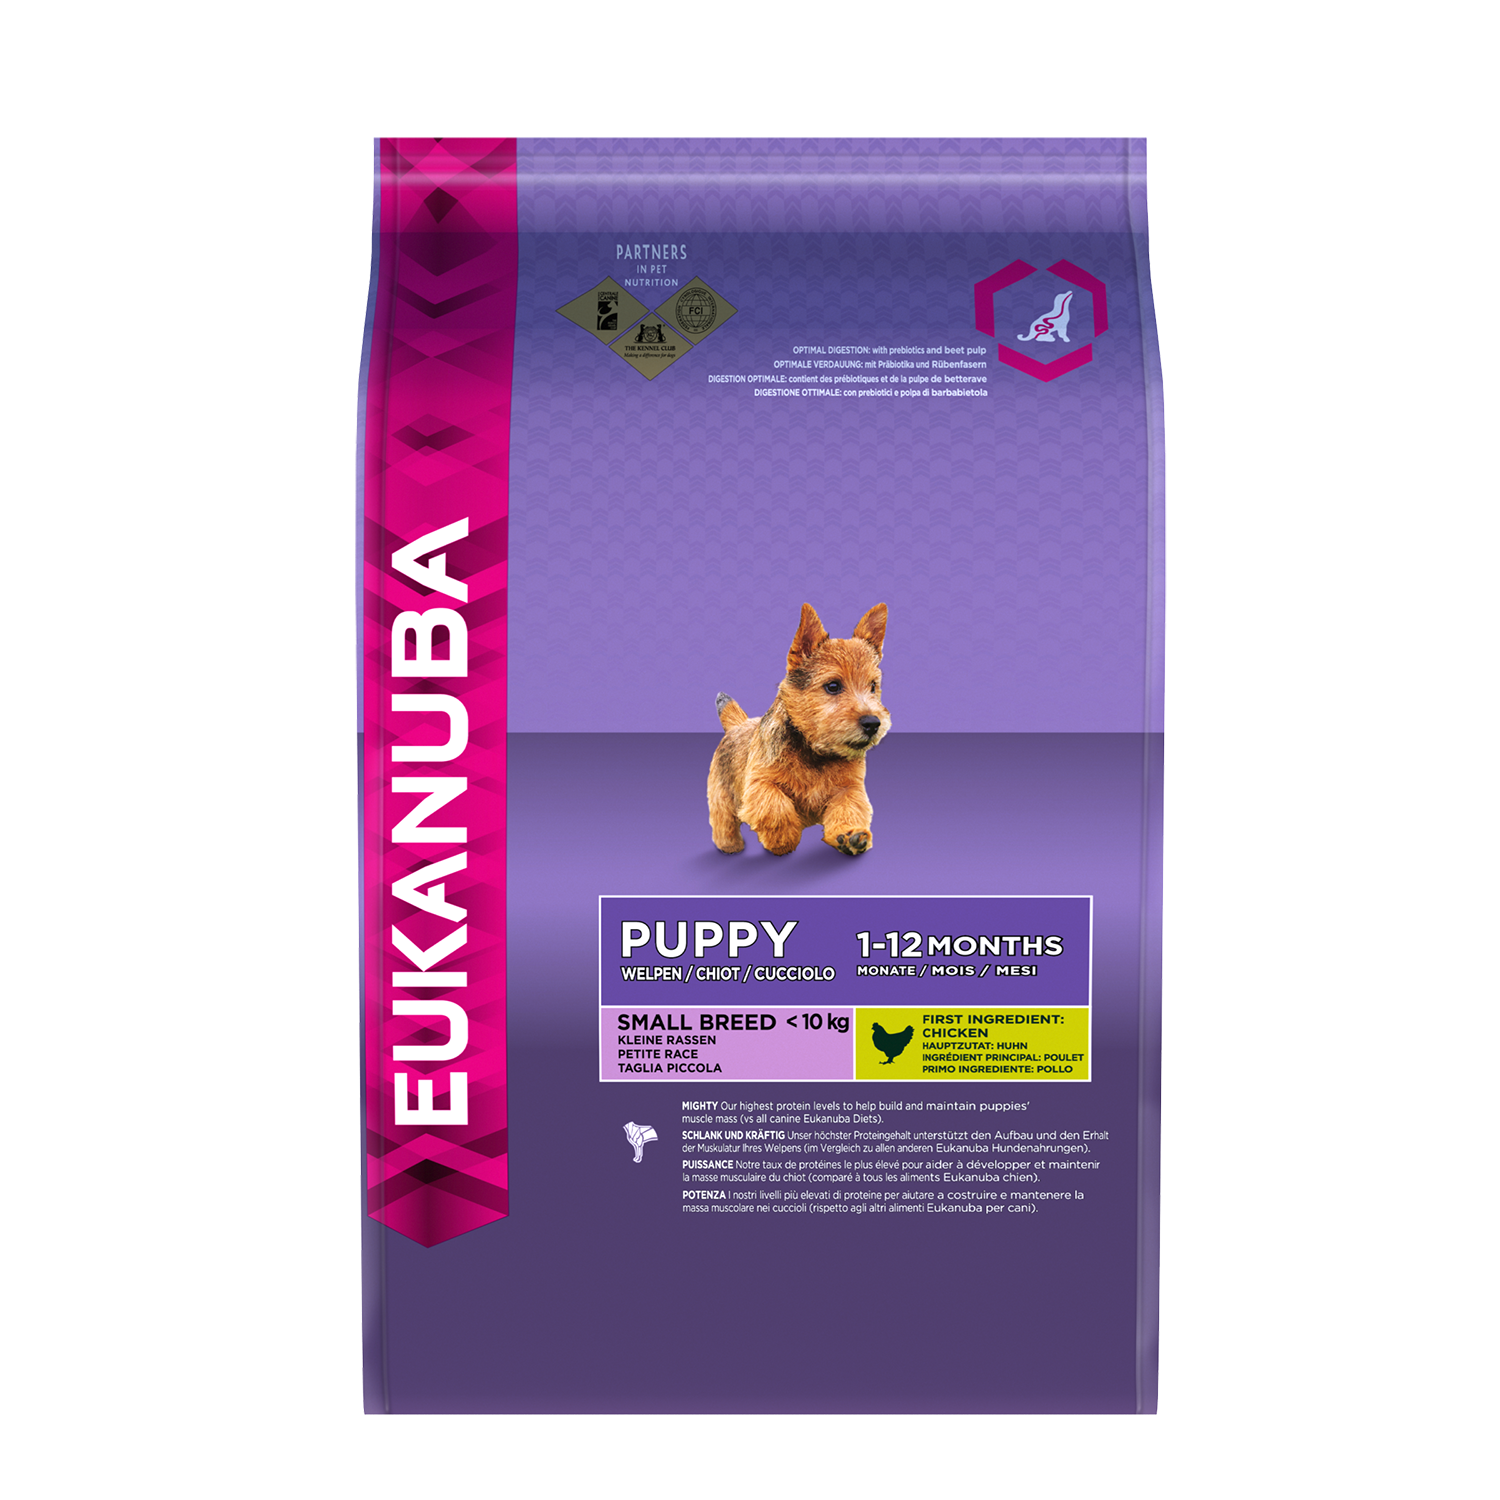 Eukanuba Puppy Food >> EUKANUBA Puppy Dry Dog Food For Small Breed, Chicken - Dog Food,Nutrition and Breed Information ...